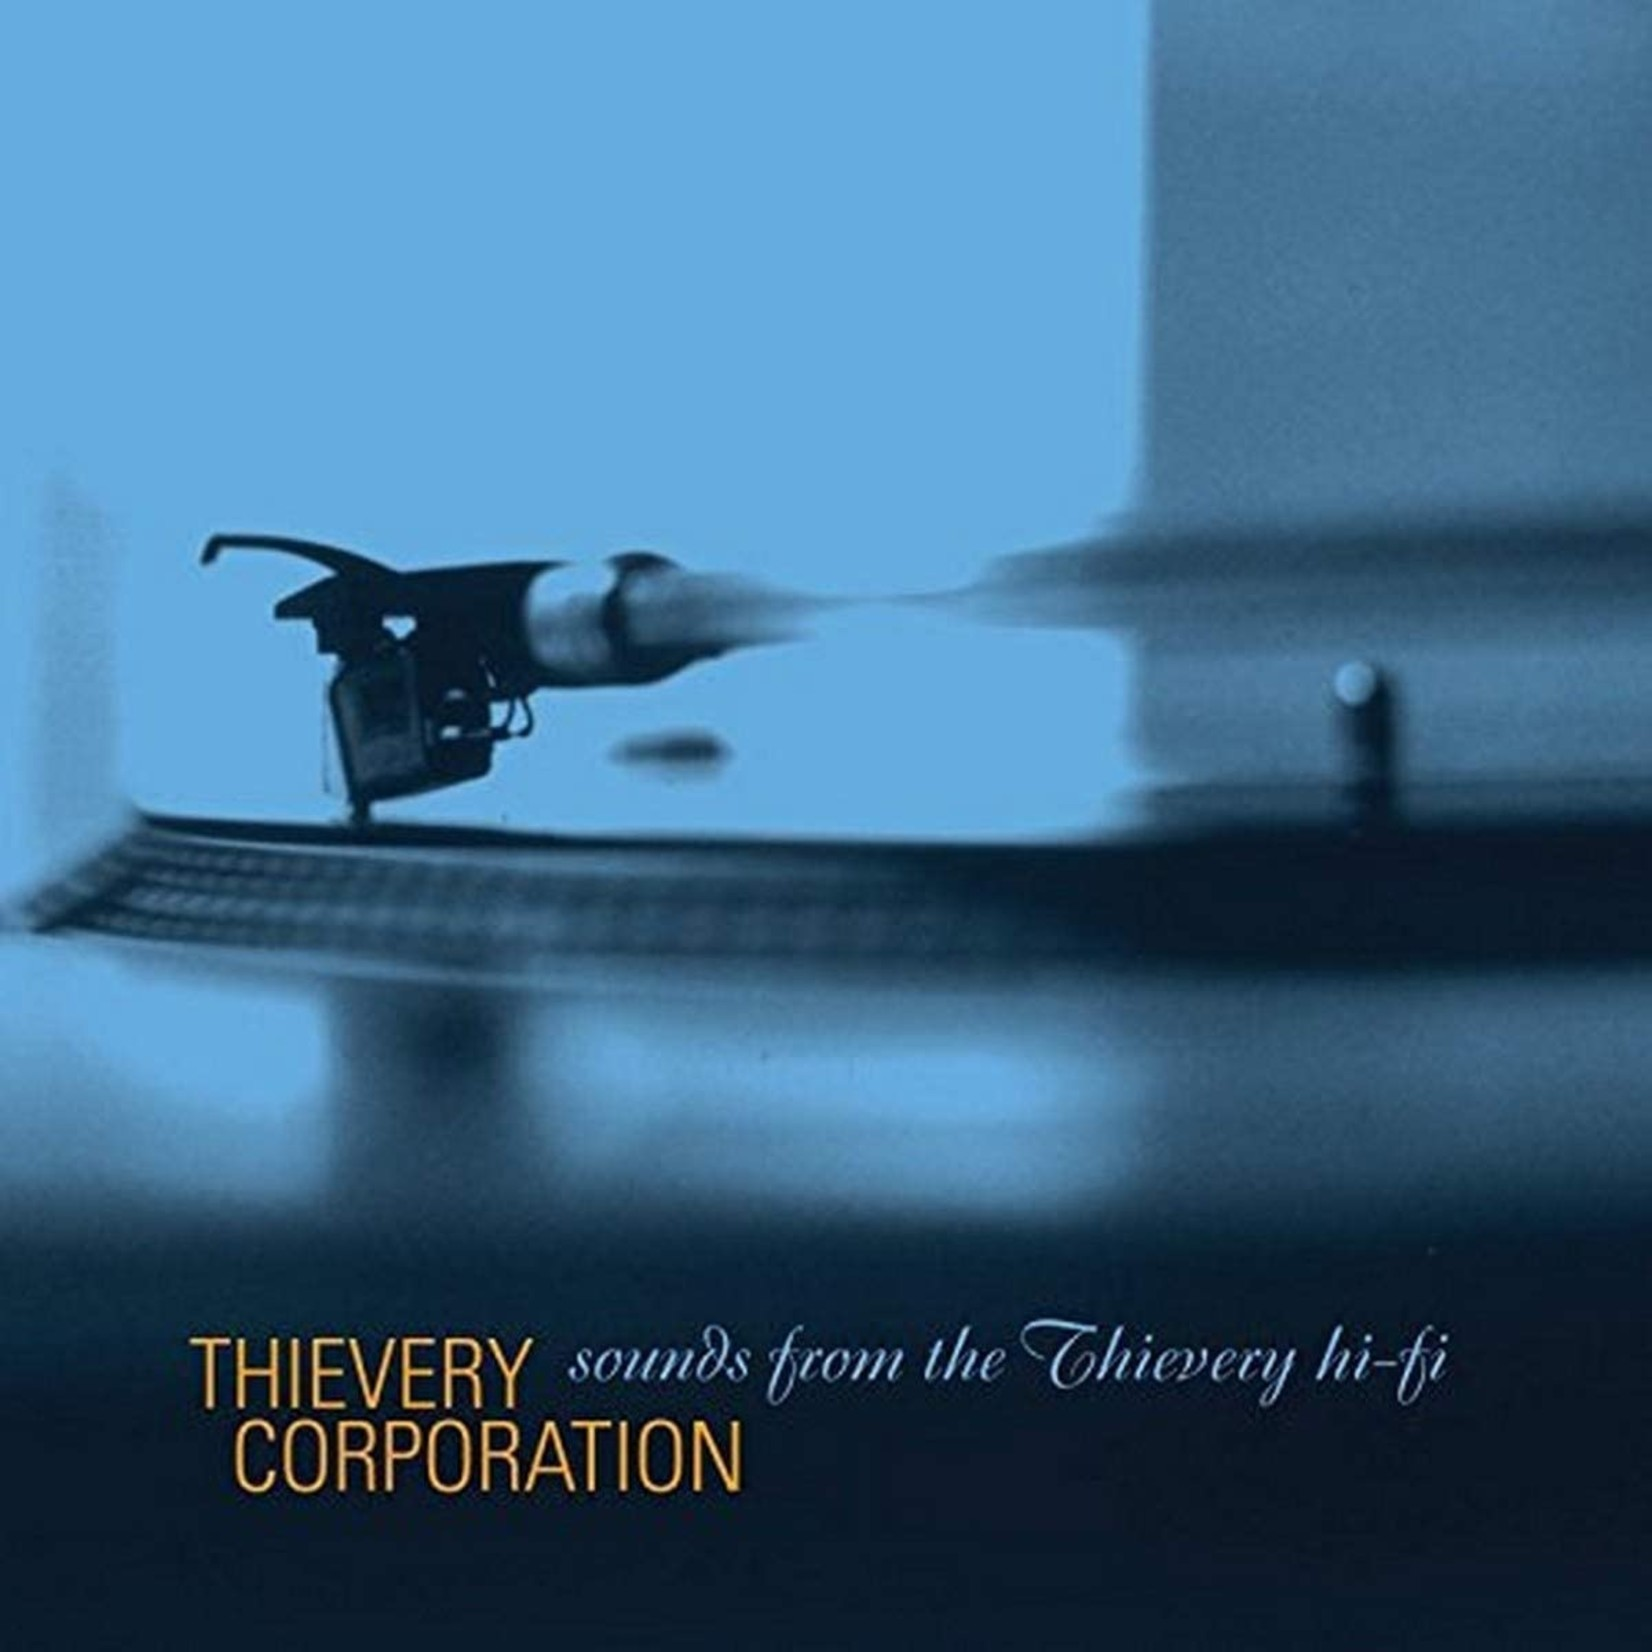 [New] Thievery Corporation: Sounds From The Thievery Hi-Fi (2LP)